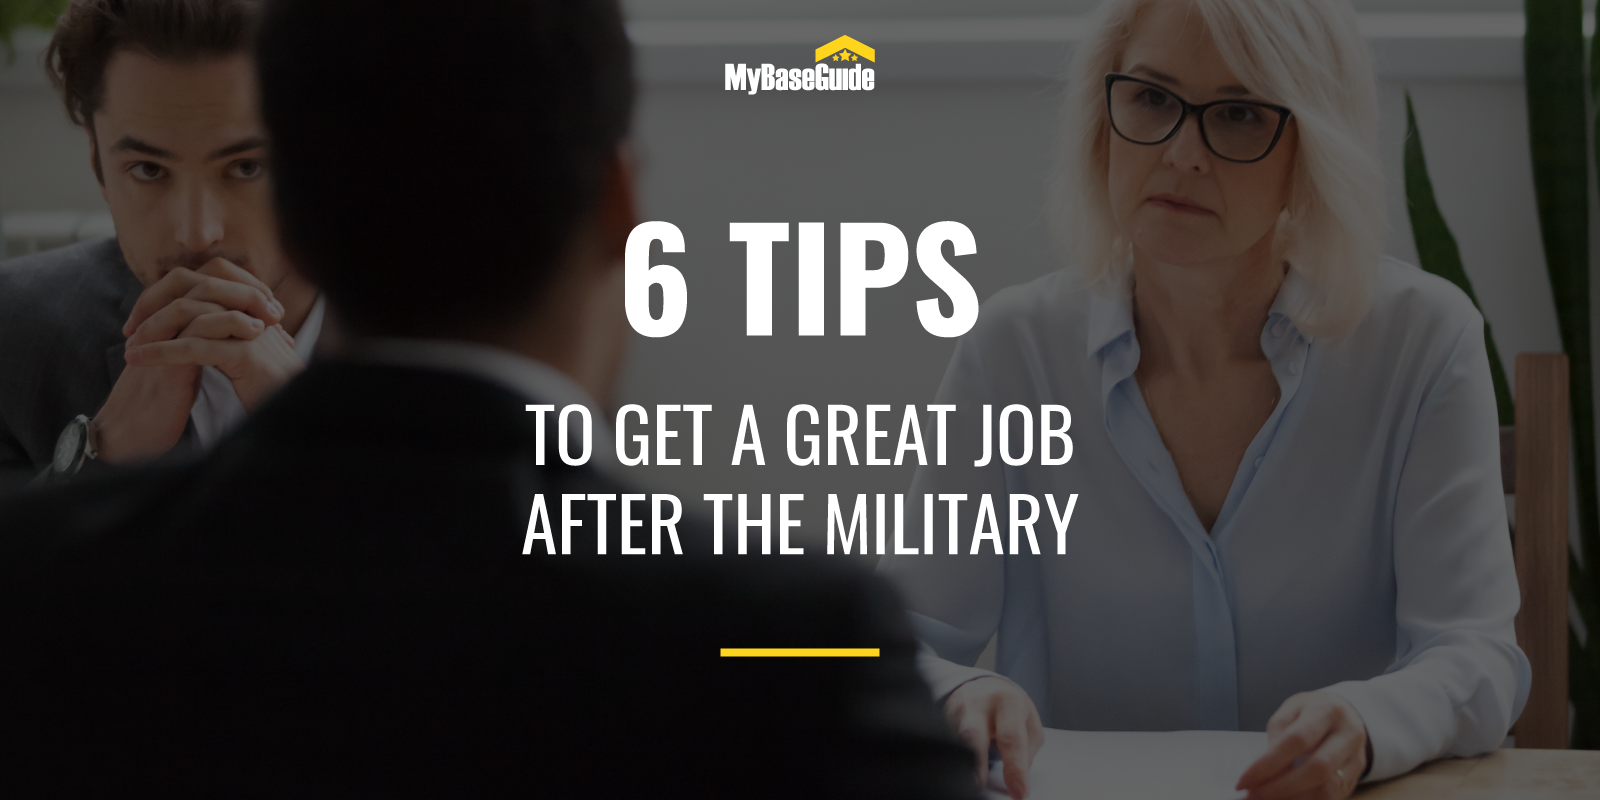 Hero image: 6 Tips to Get a Great Job After the Military